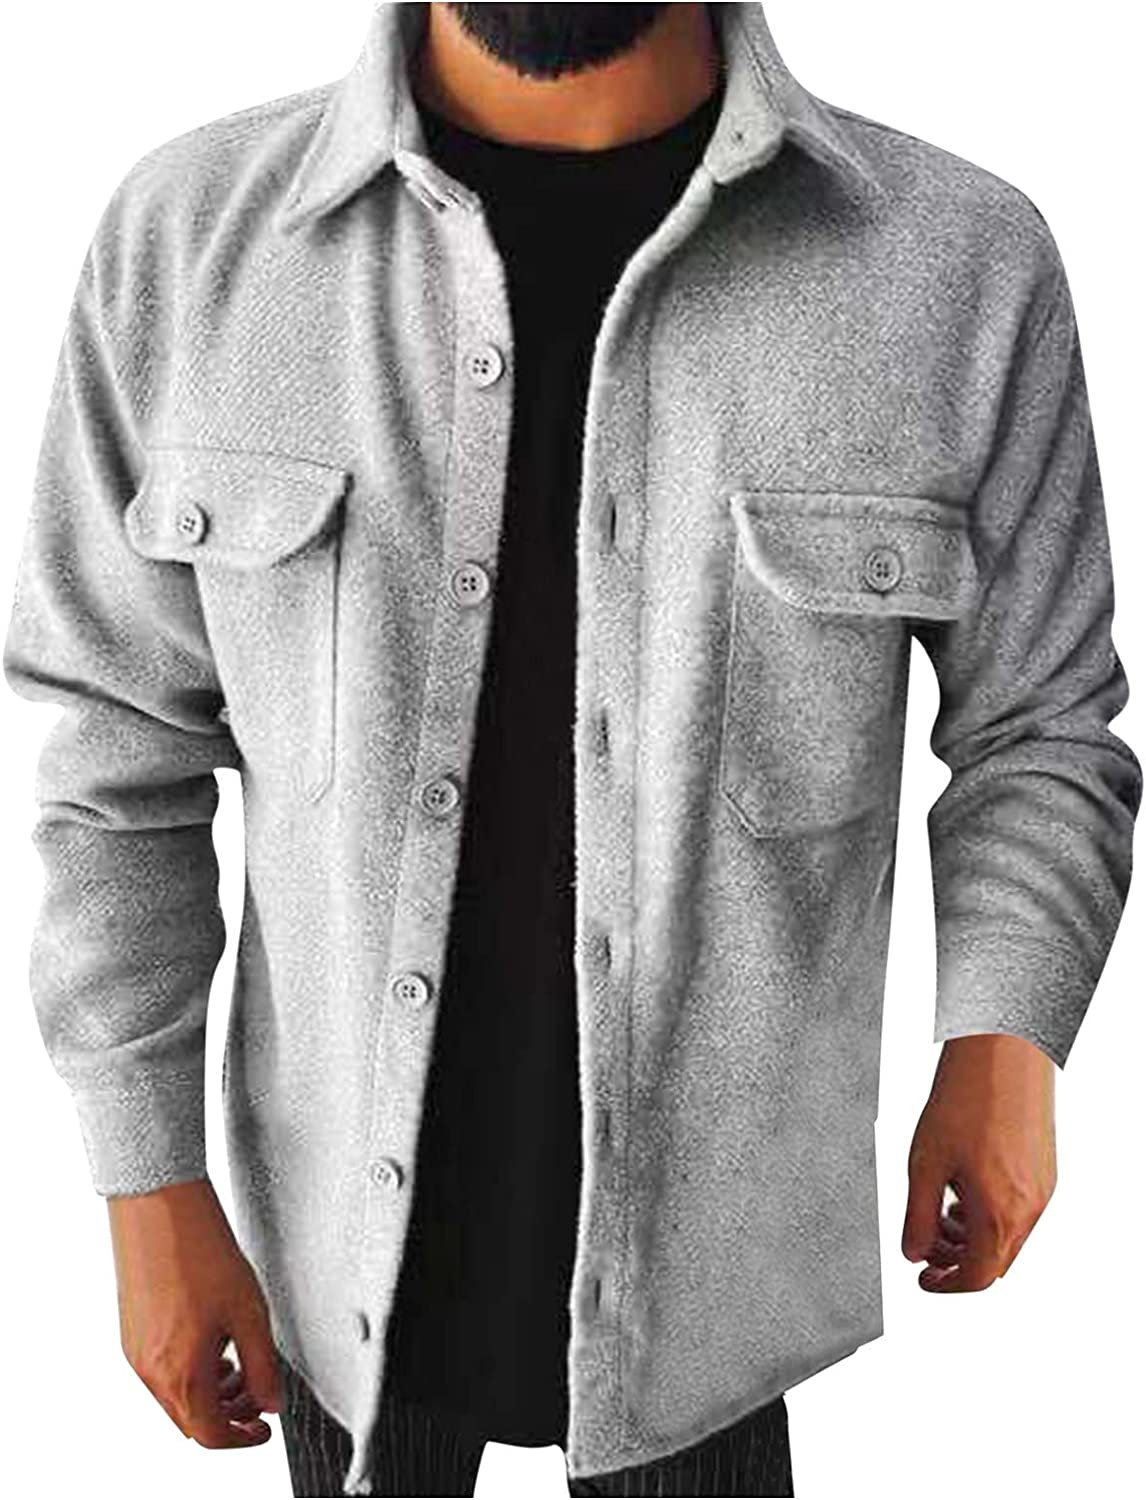 Mens Casual Flannel Corduroy Jackets Big and Tall Long Sleeve Button Down Shirts Tops Sweatshirts with Pockets